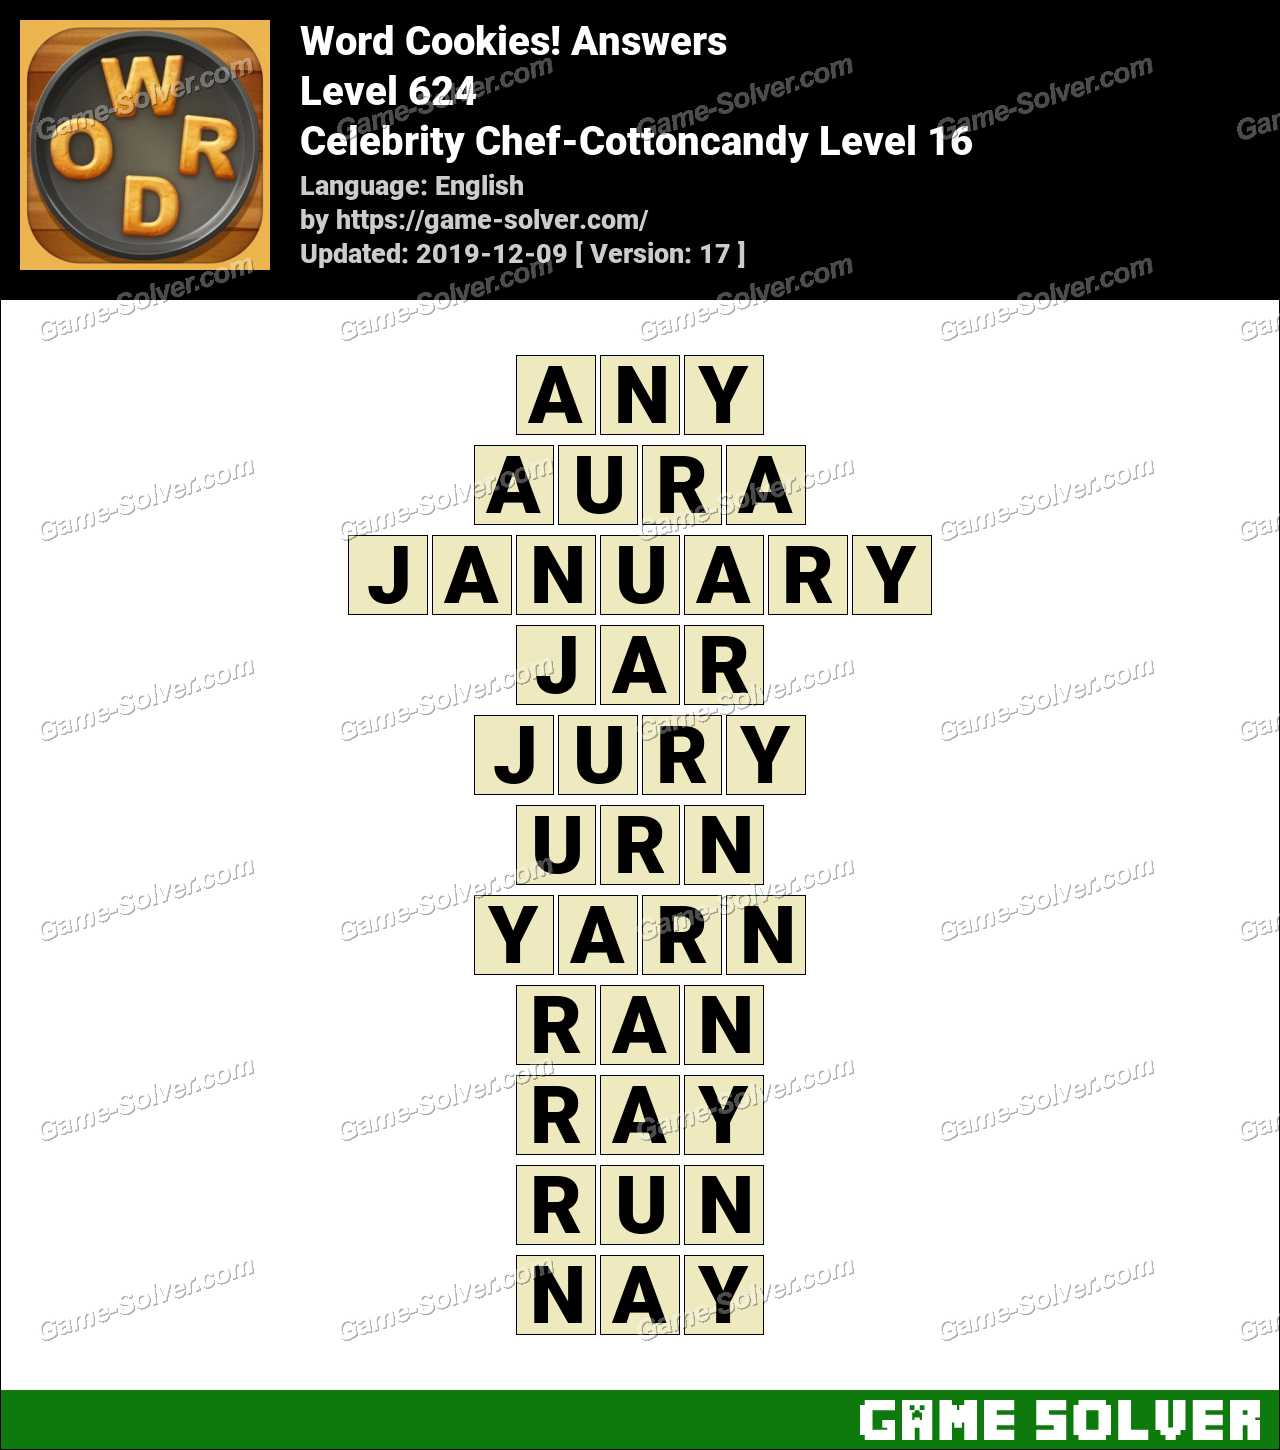 Word Cookies Celebrity Chef-Cottoncandy Level 16 Answers